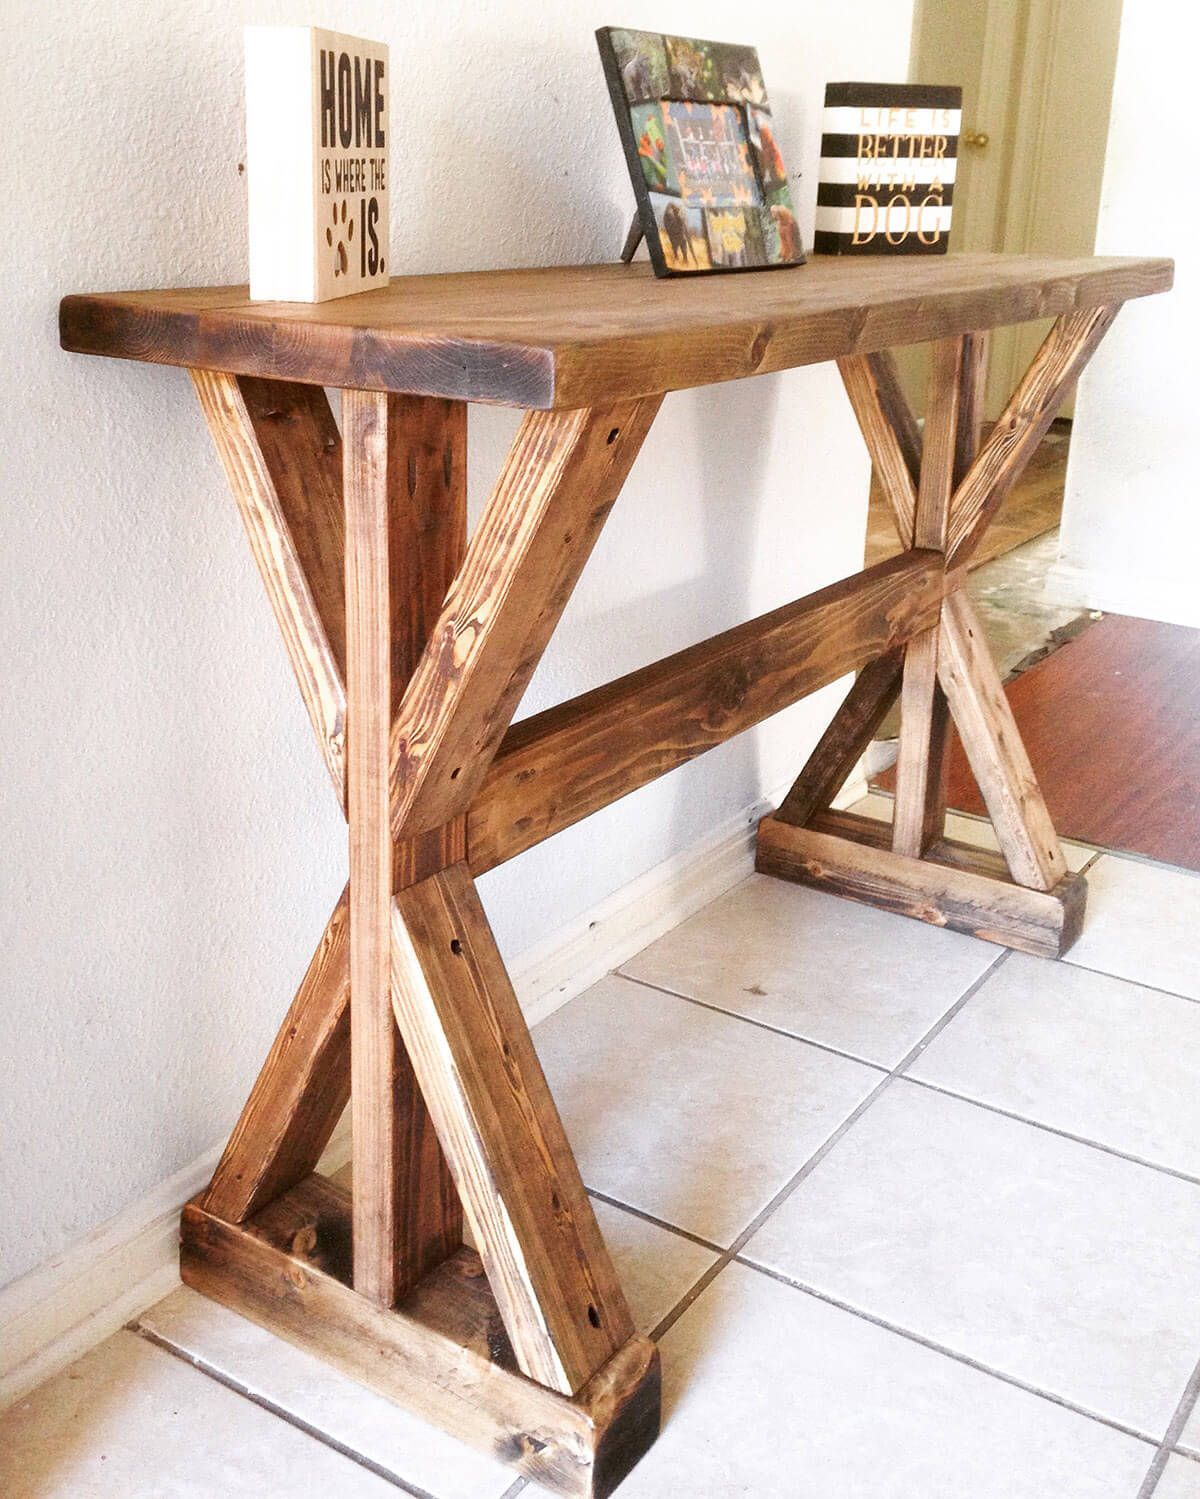 Fantastic Foyer Ideas To Make The Perfect First Impression: 37 Eye-Catching Entry Table Ideas To Make A Fantastic